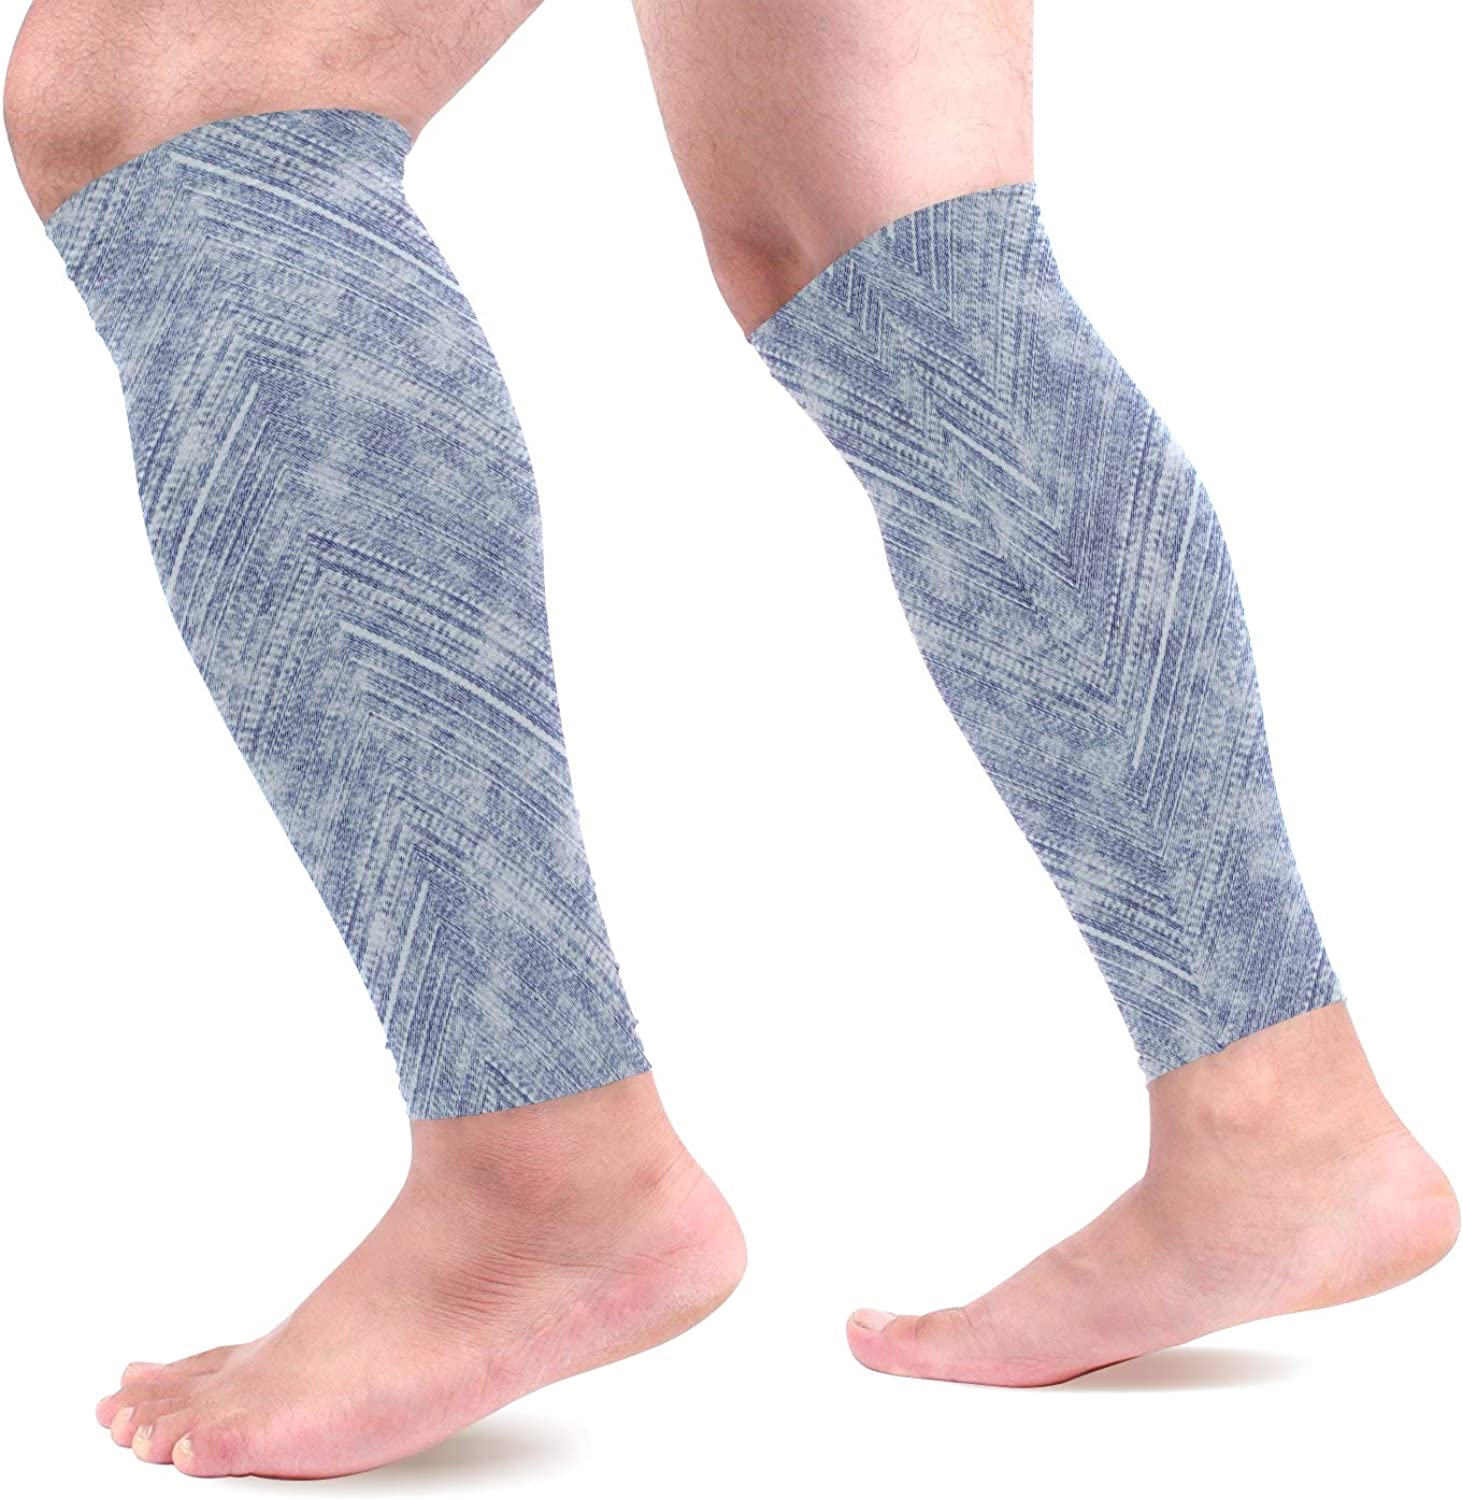 visesunny Summer Abstract Printing Sports Calf Support Sleeves for Muscle Pain Relief, Improved Circulation Compression Effective Support for Running, Jogging,Workout,Recovery(1 Pair)